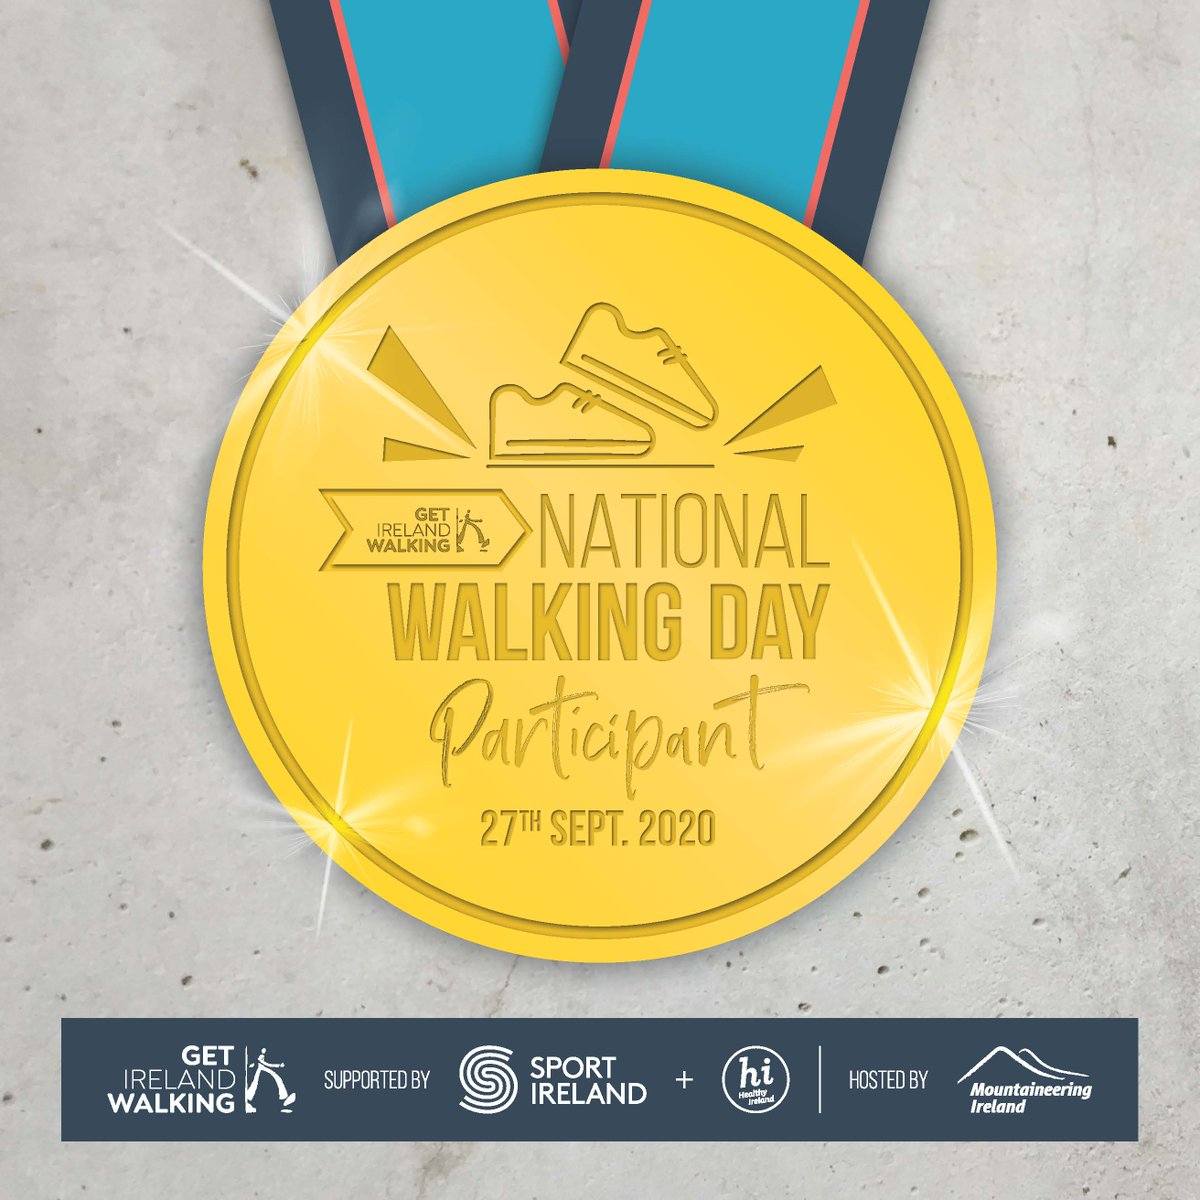 Are you one of the amazing people who walked yesterday on National Walking Day? Well here is a little thank you! Share the medal on your social media page tag us & all your friends who walked who can copy & share too! #NWD2020 #BeActive #WalkYourArea #WalkYourTown https://t.co/0wOAkVwYu9